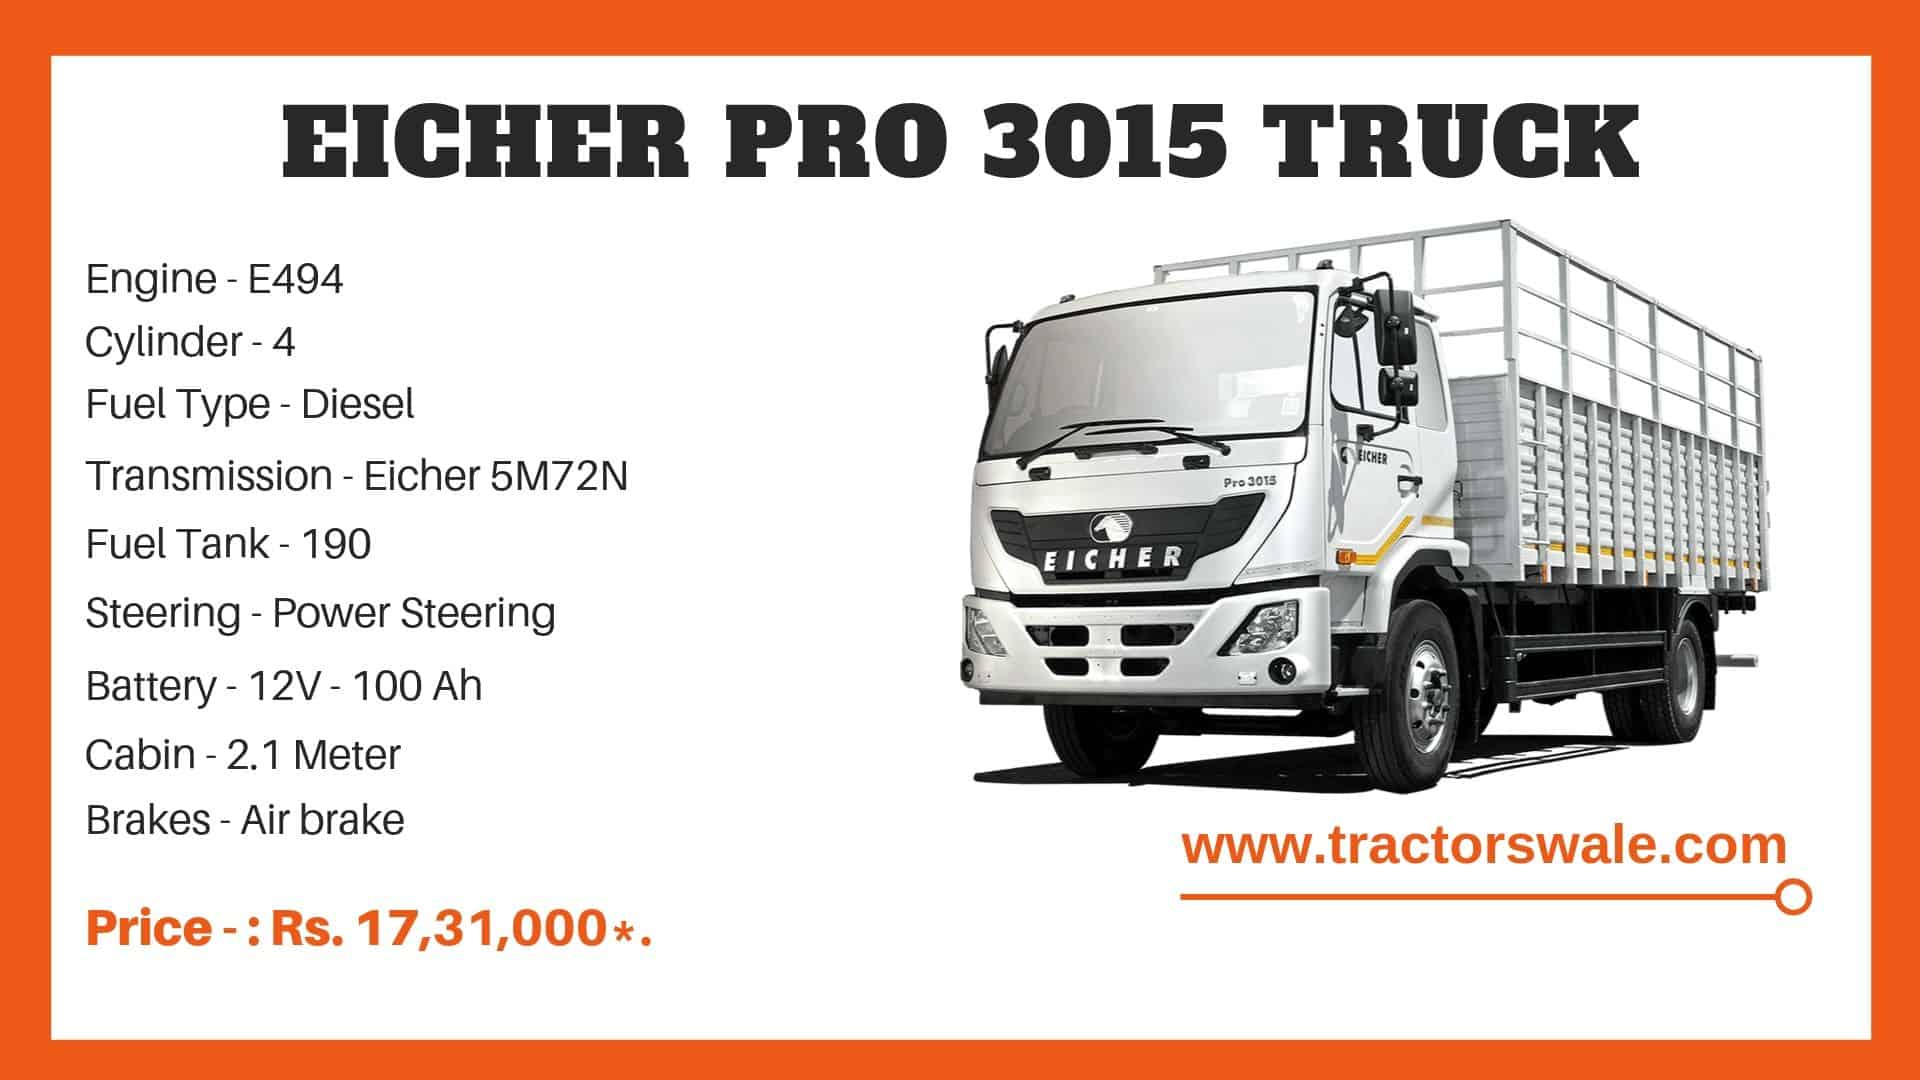 Specification Of Eicher Pro 3015 Truck